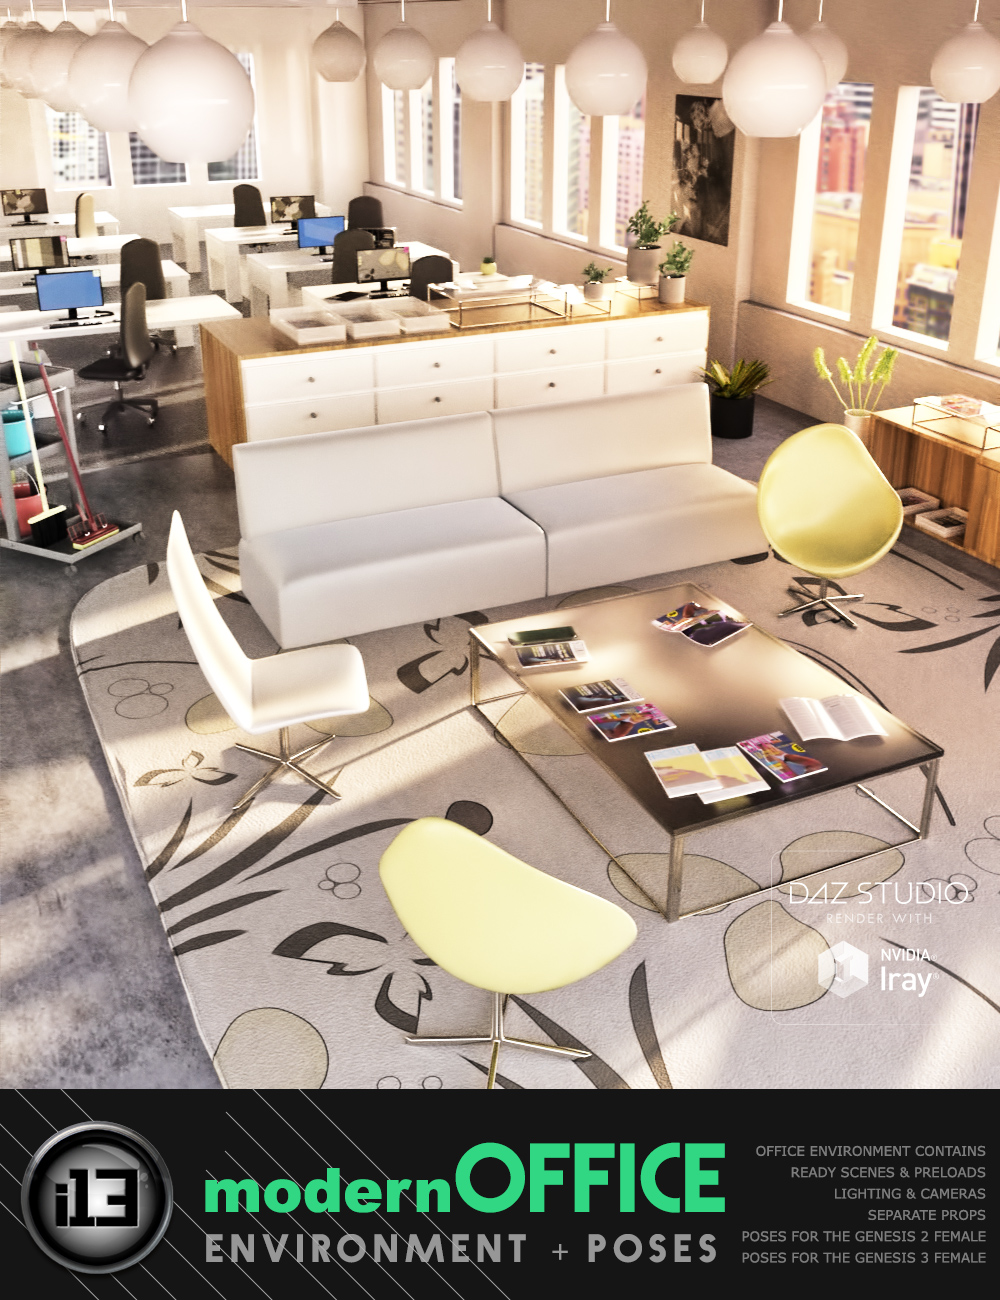 i13 Modern Office by: ironman13, 3D Models by Daz 3D